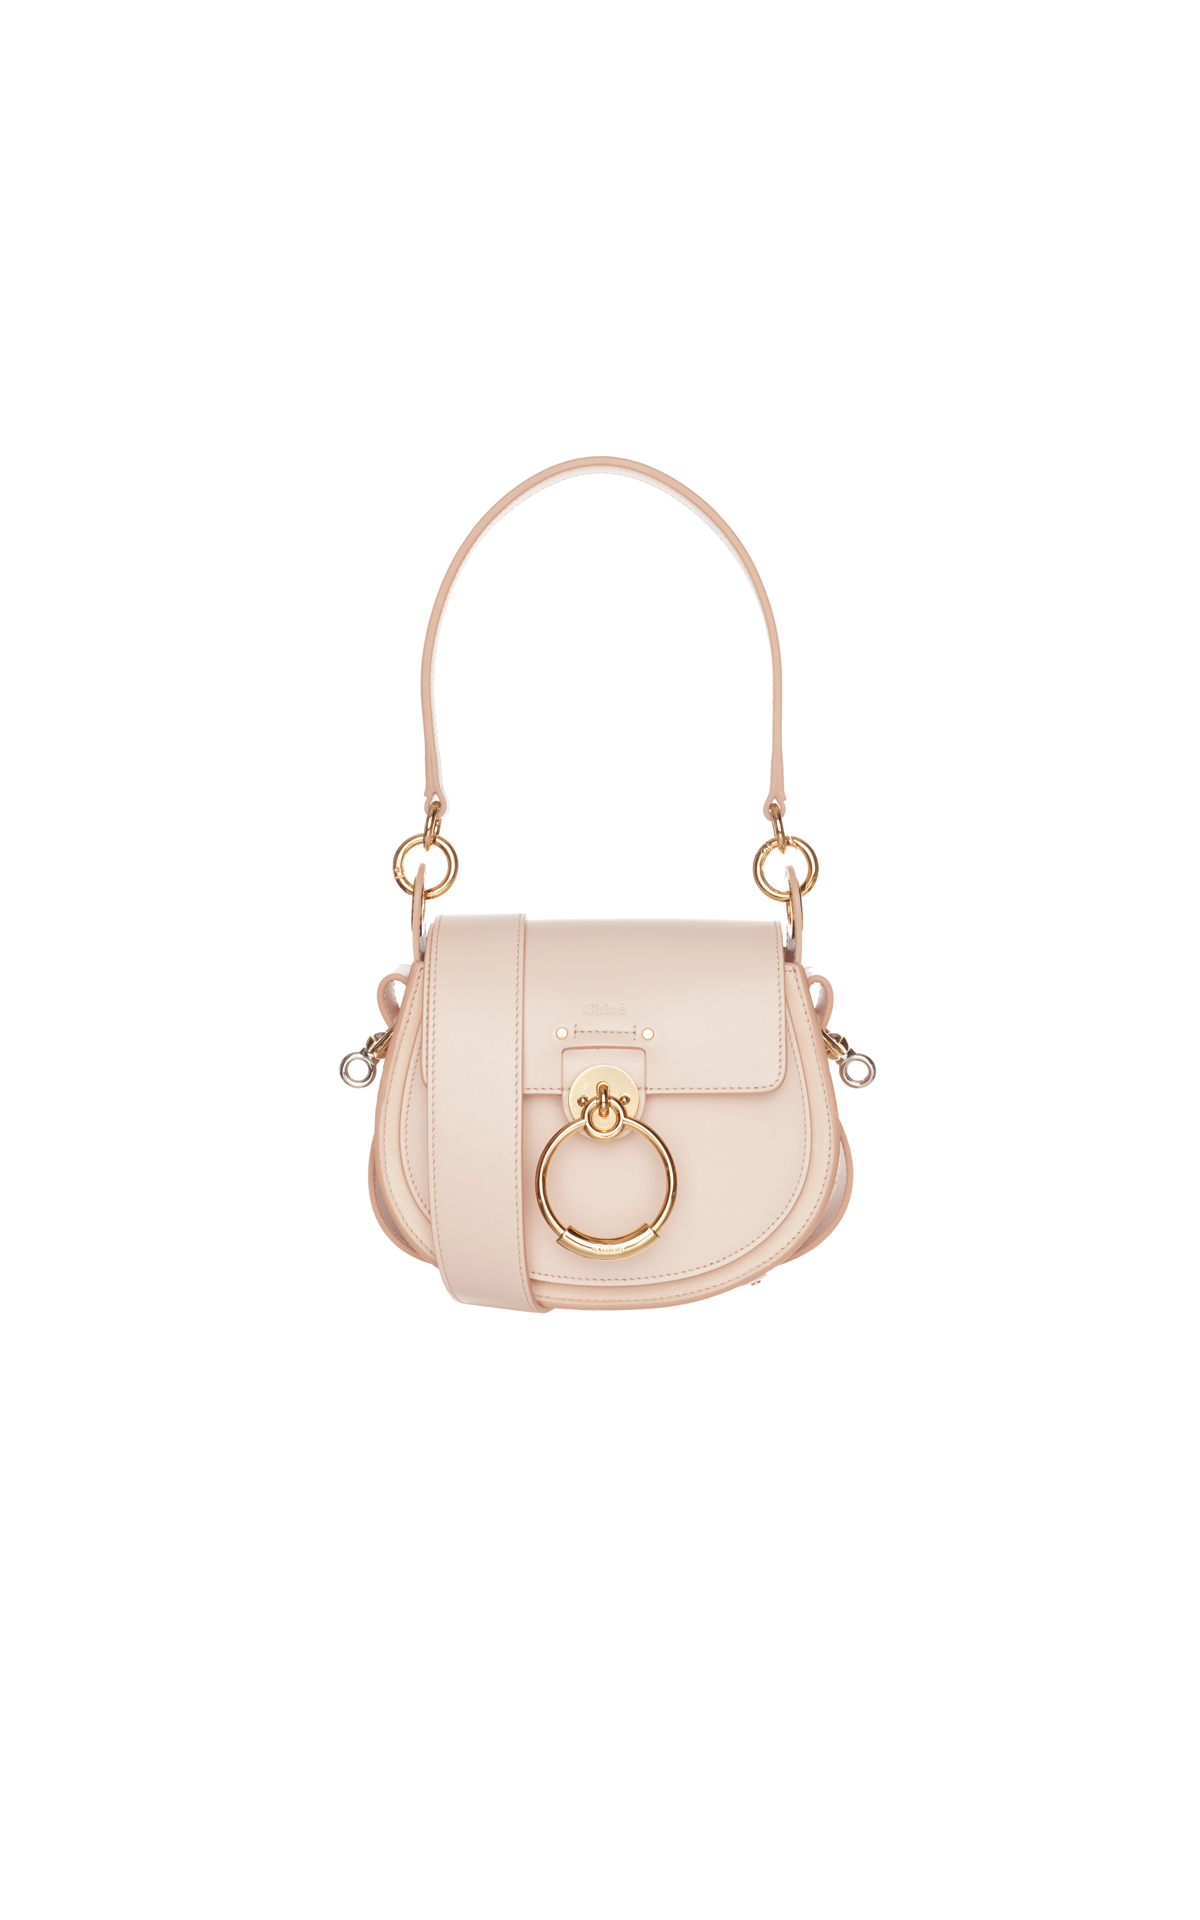 Chloe Tess shoulder bag pink from Bicester Village